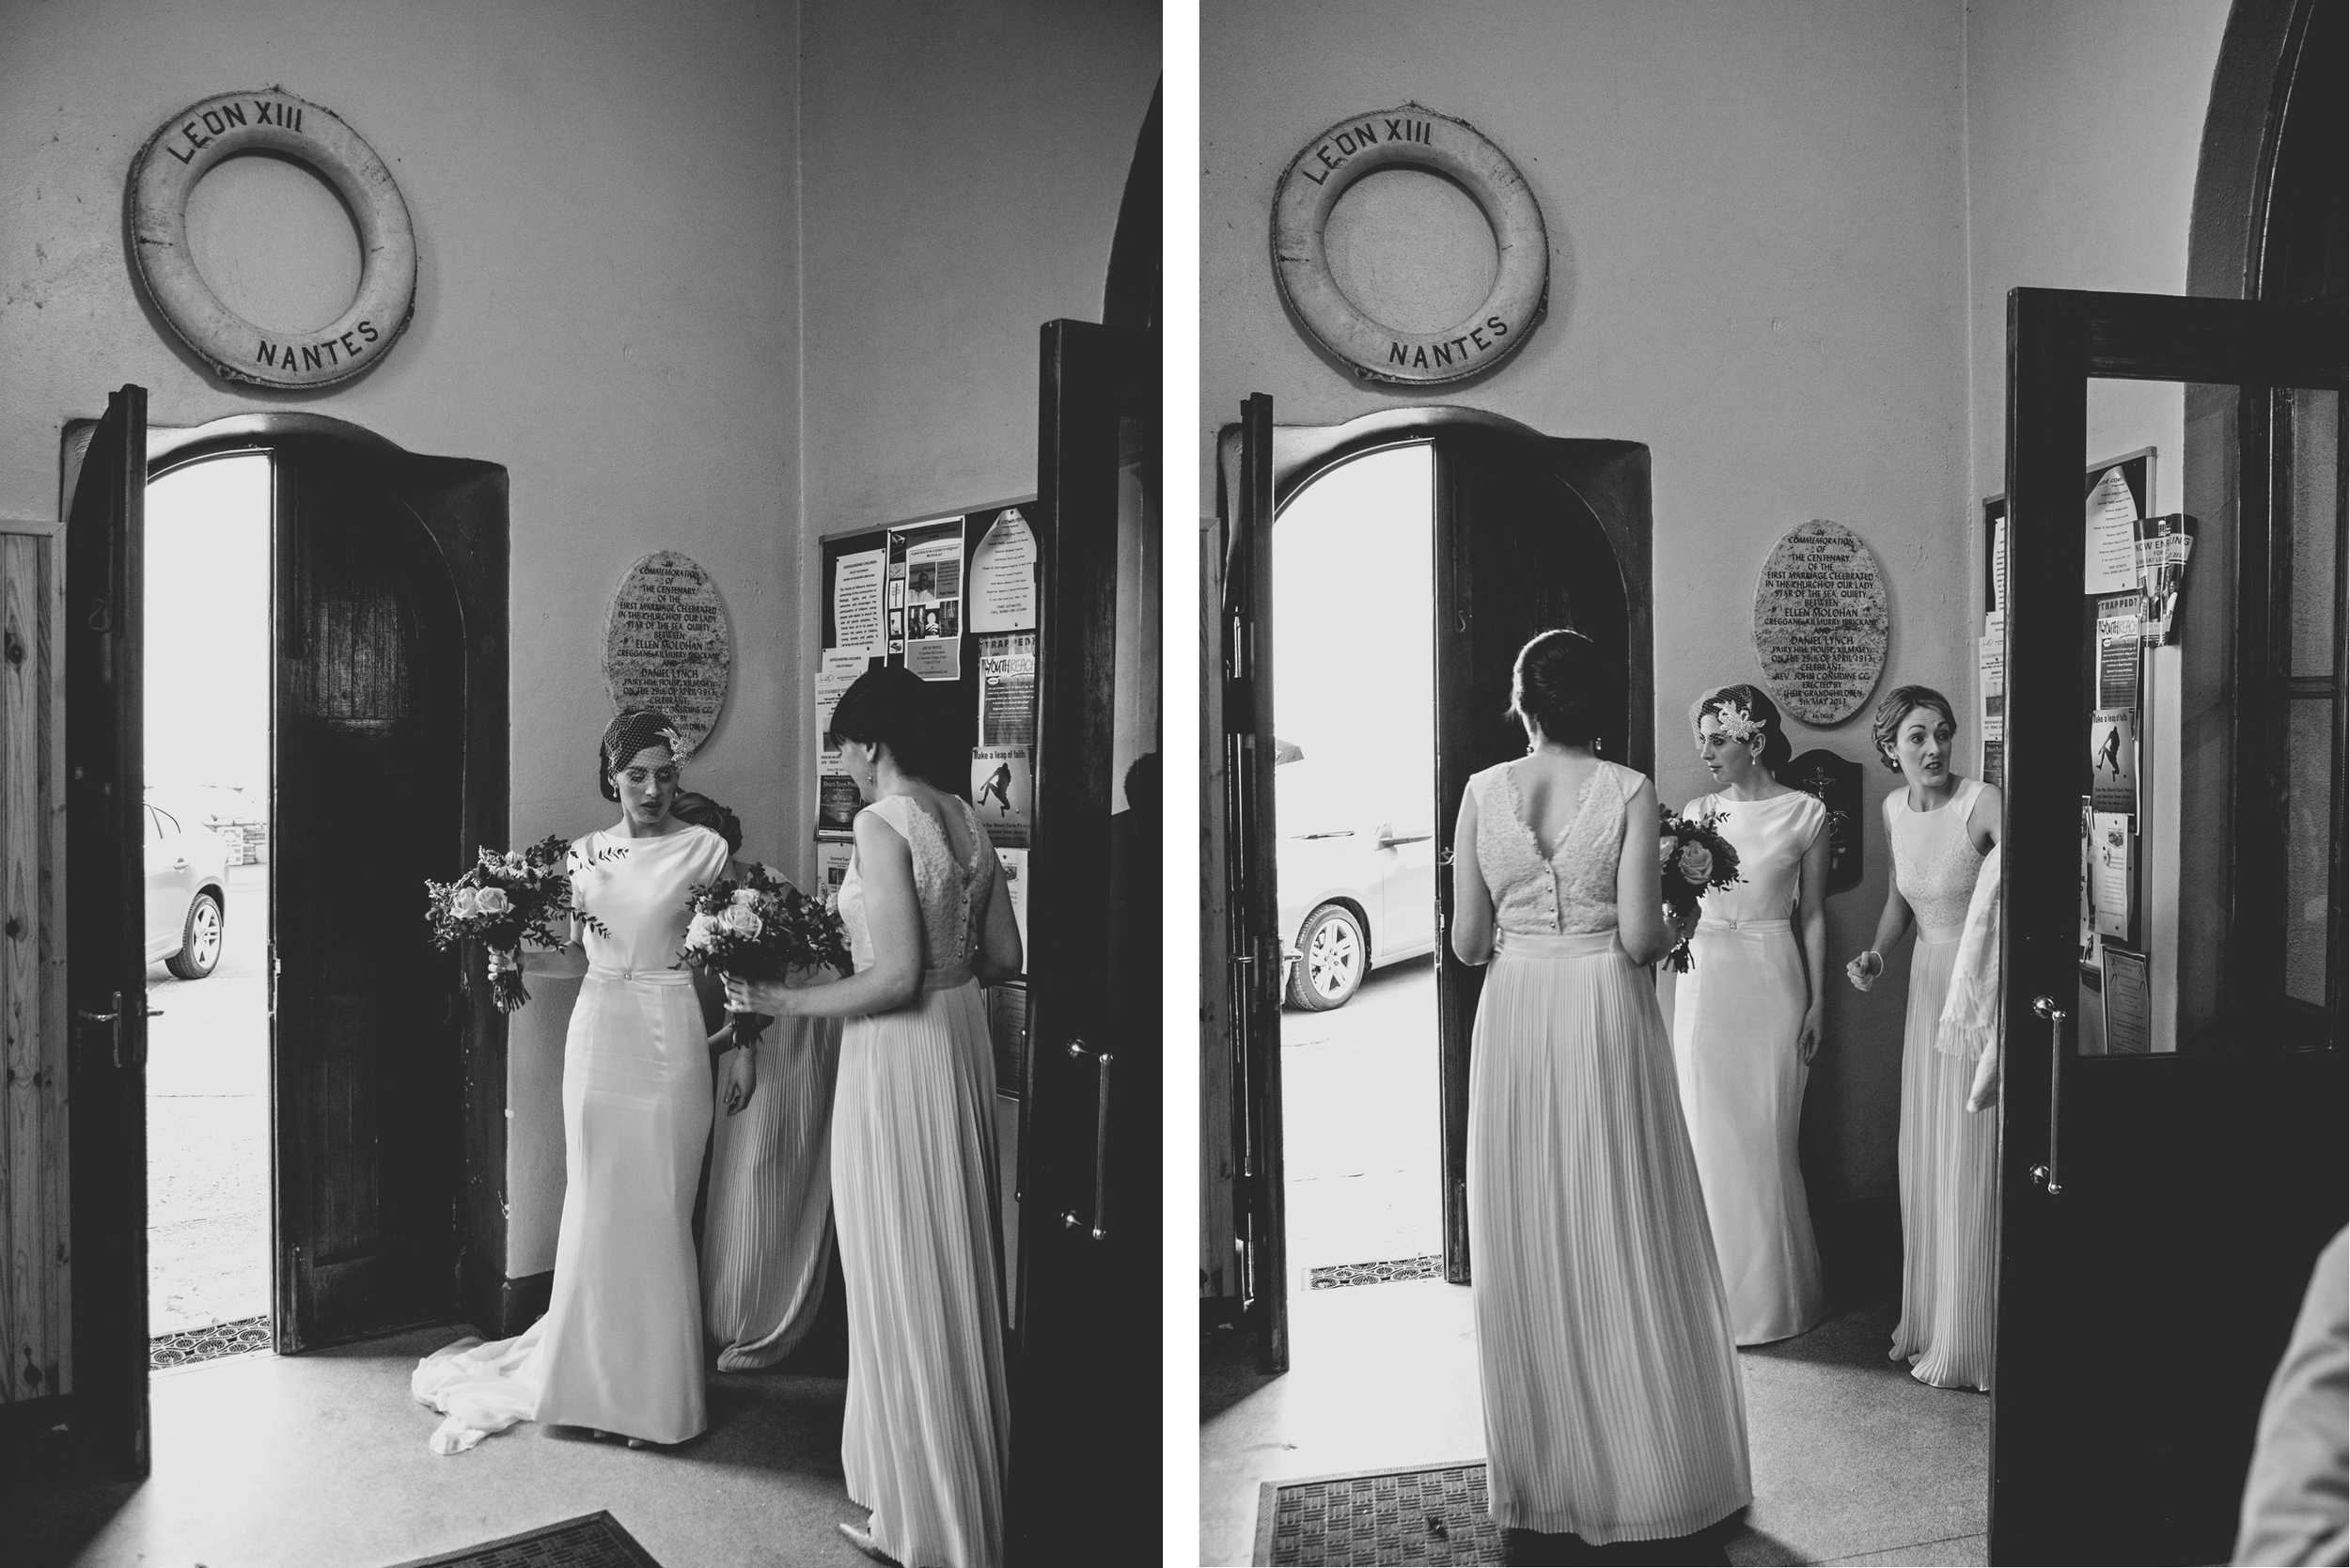 Brides ready to go to the church